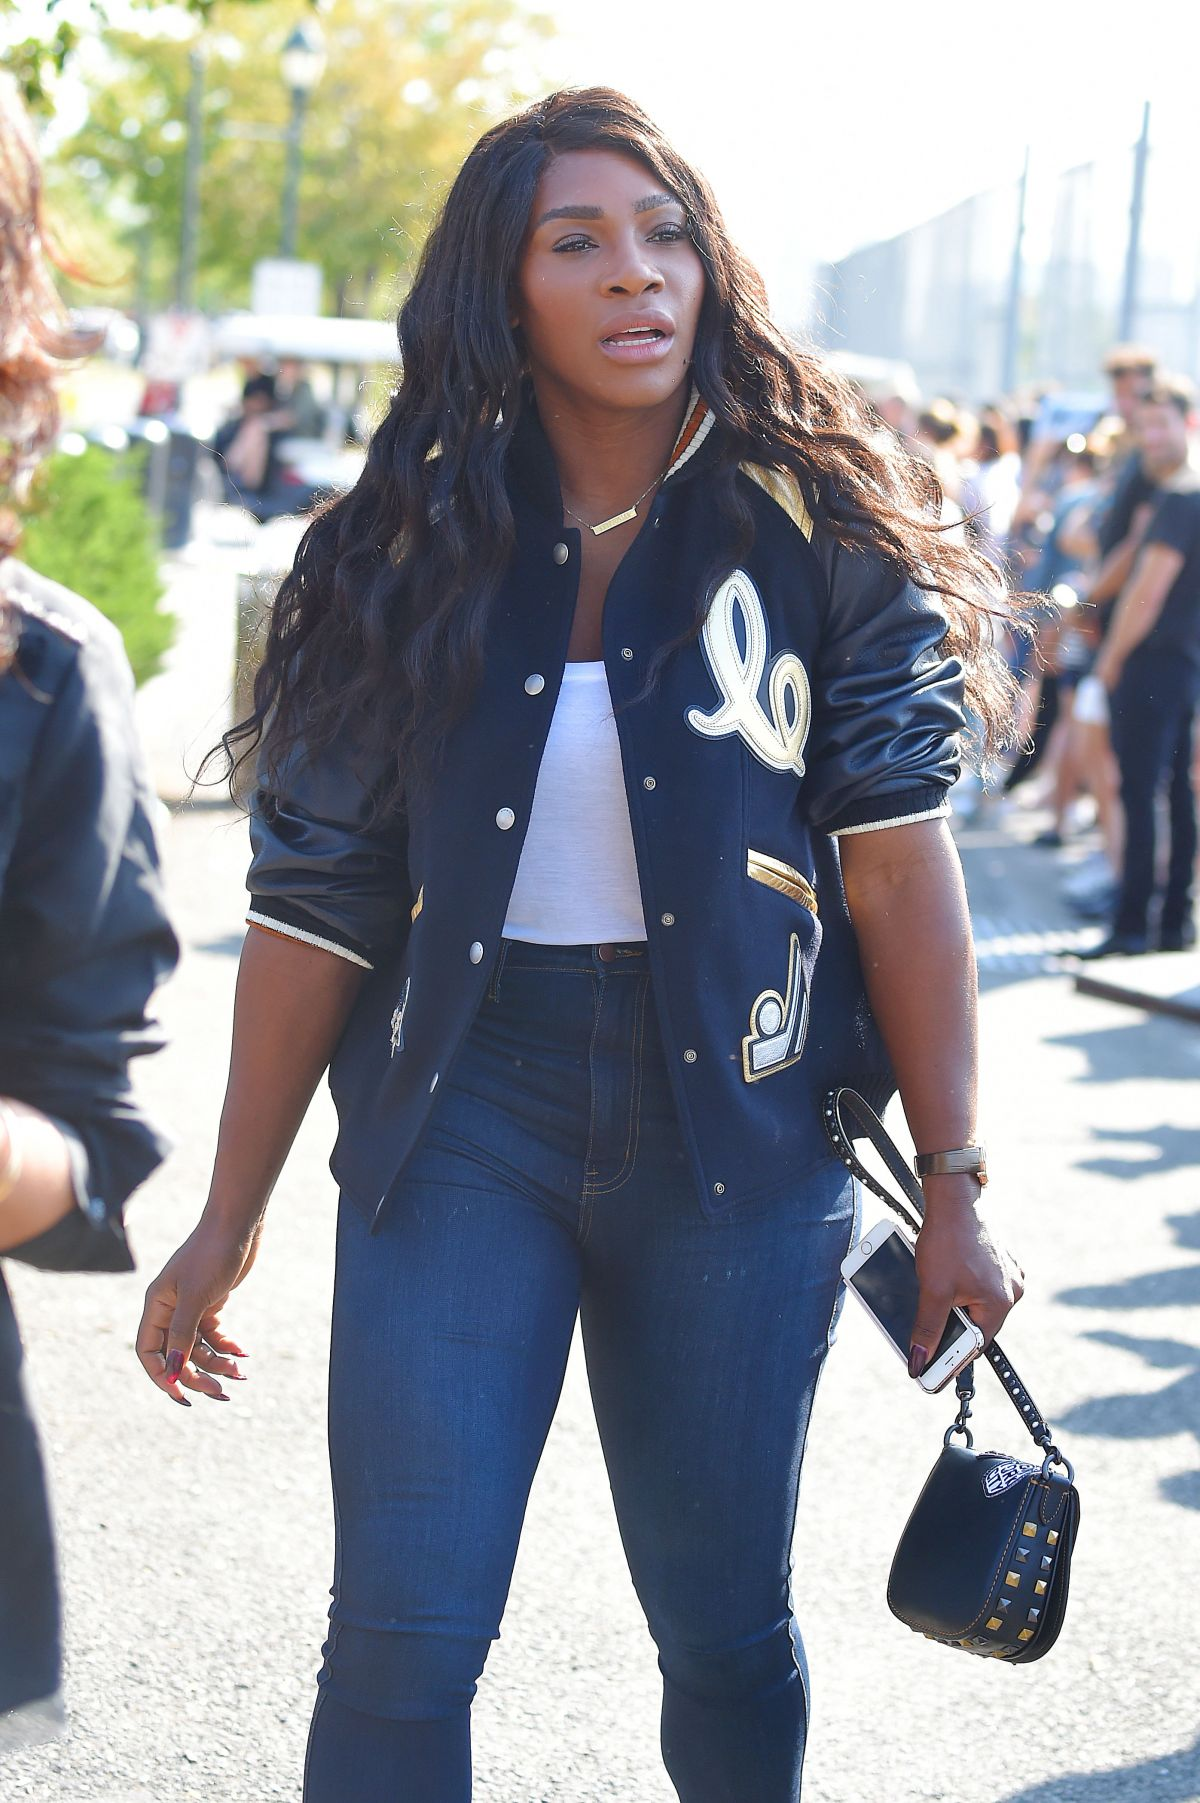 download serena williams beautiful look free hd mobile images